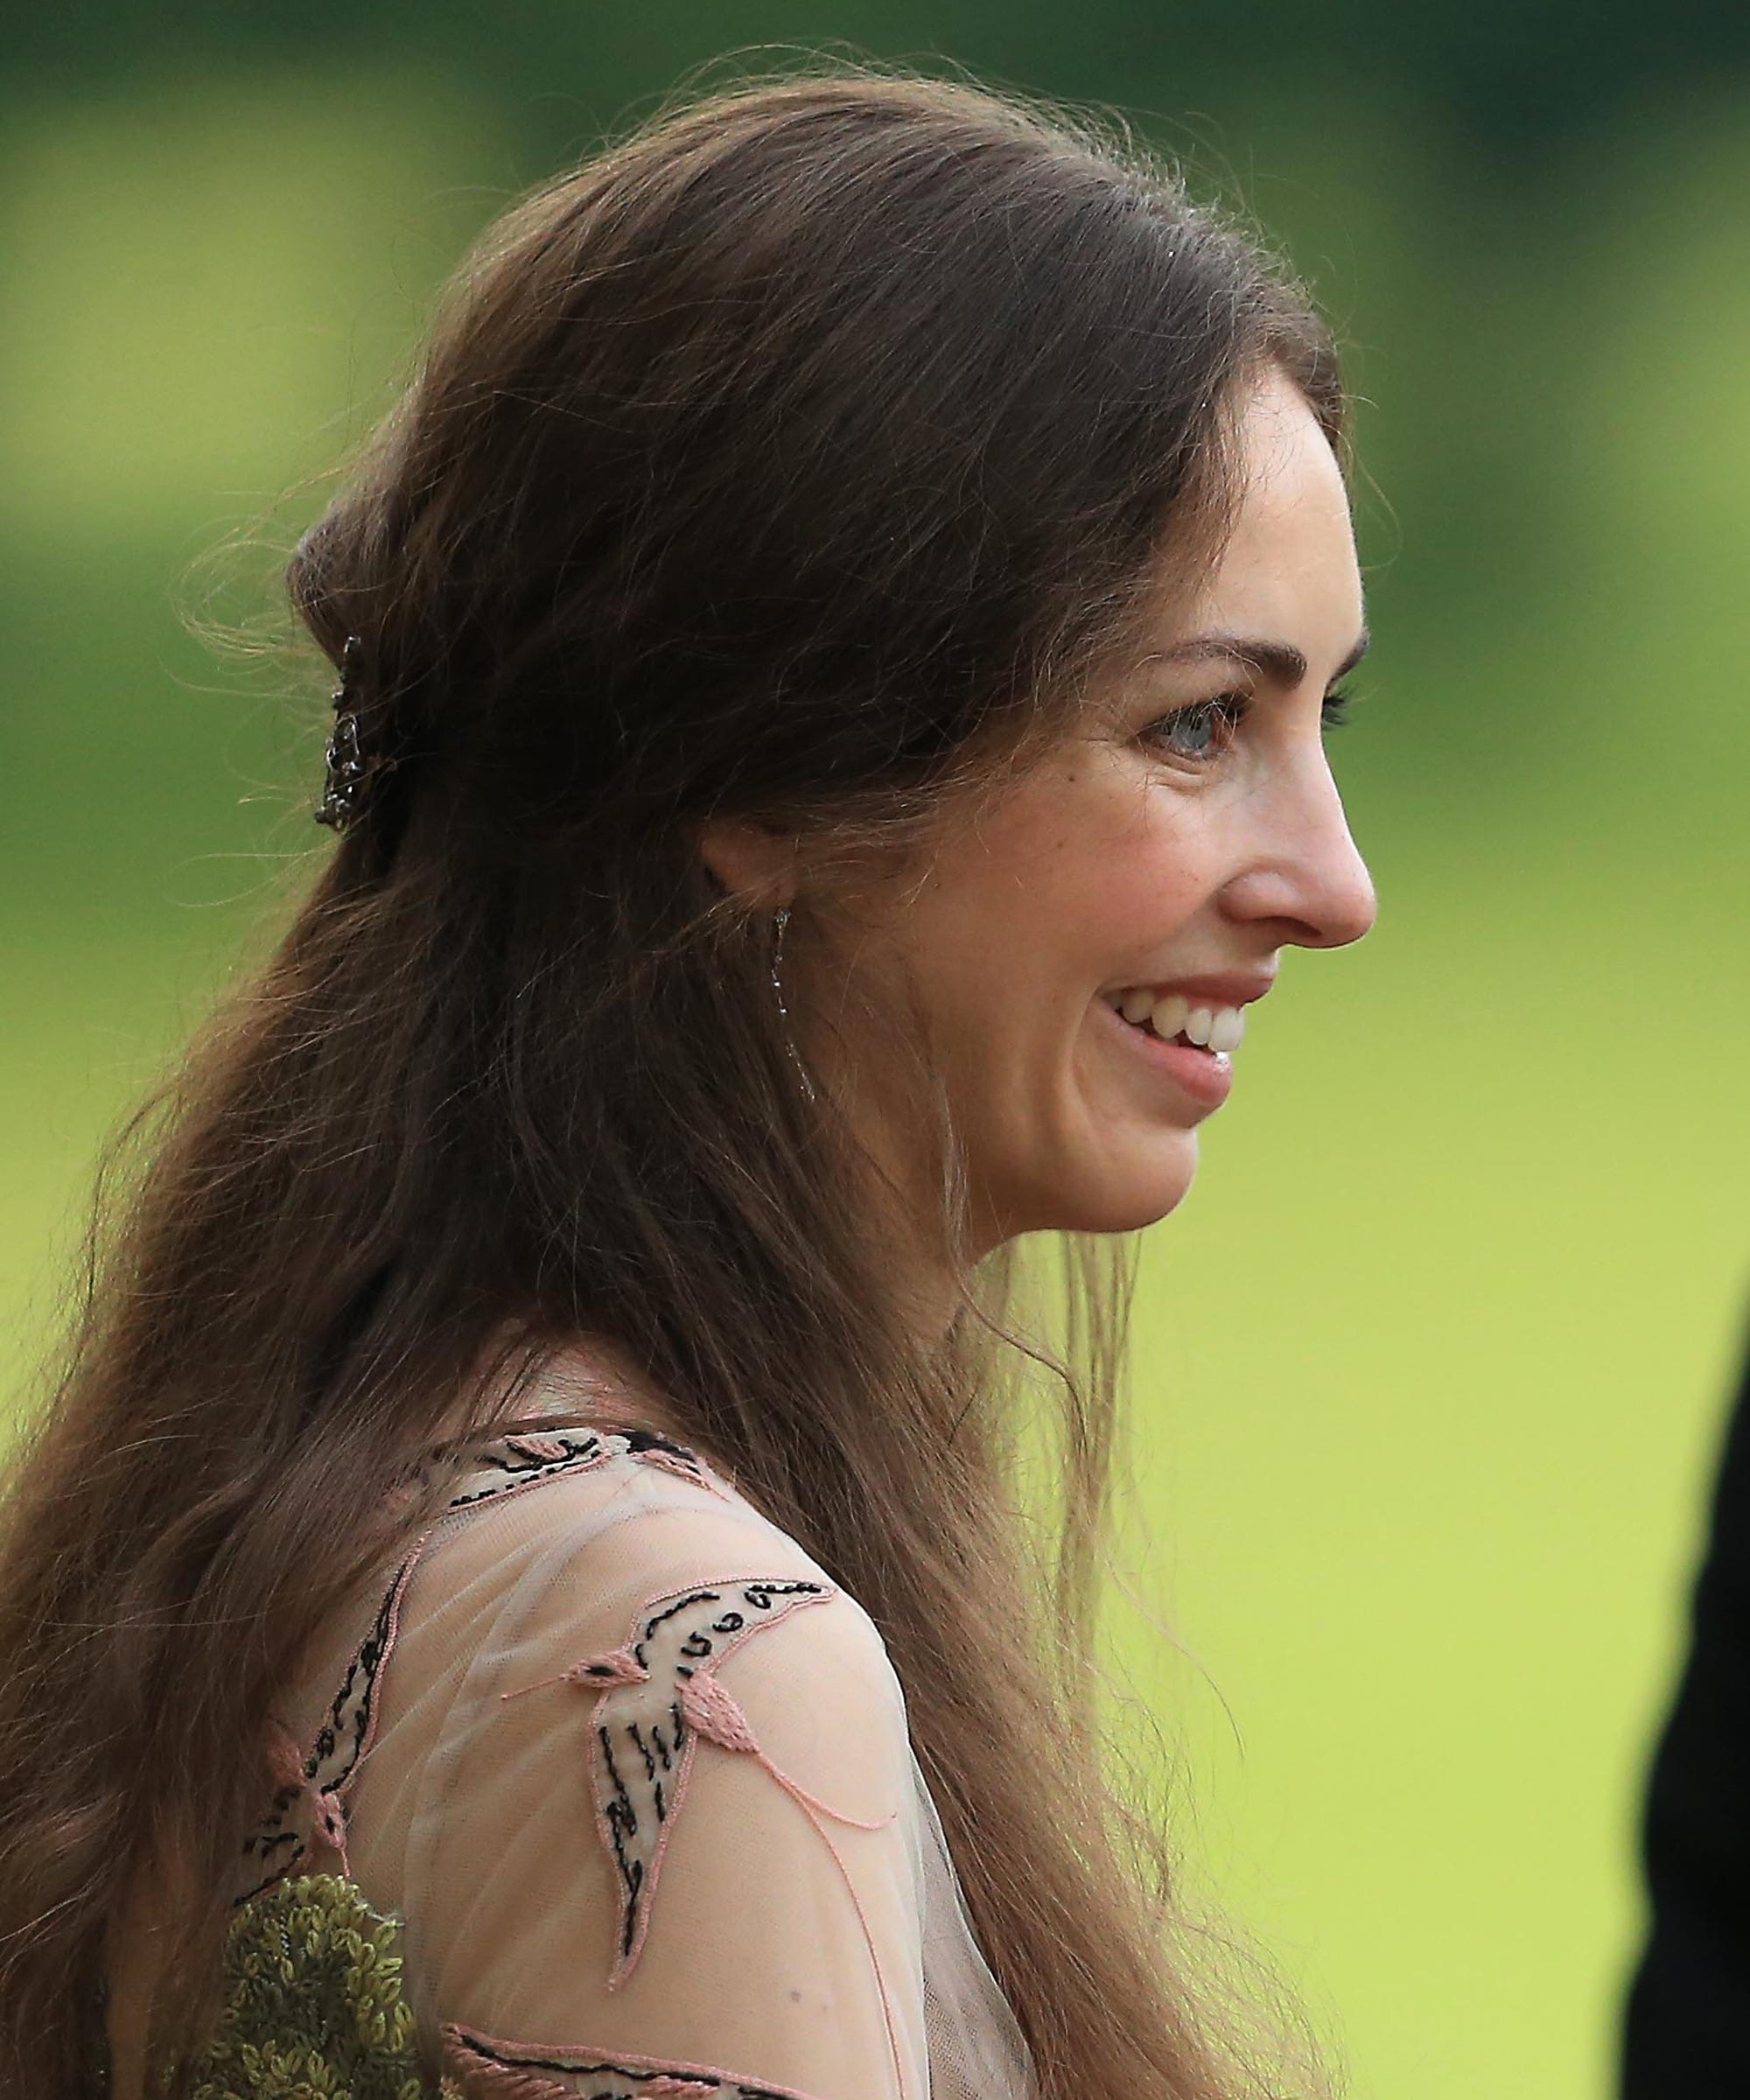 Who Is Rose Hanbury, The Marchioness Of Cholmondeley & What Does She Have To Do With Prince William & Kate?